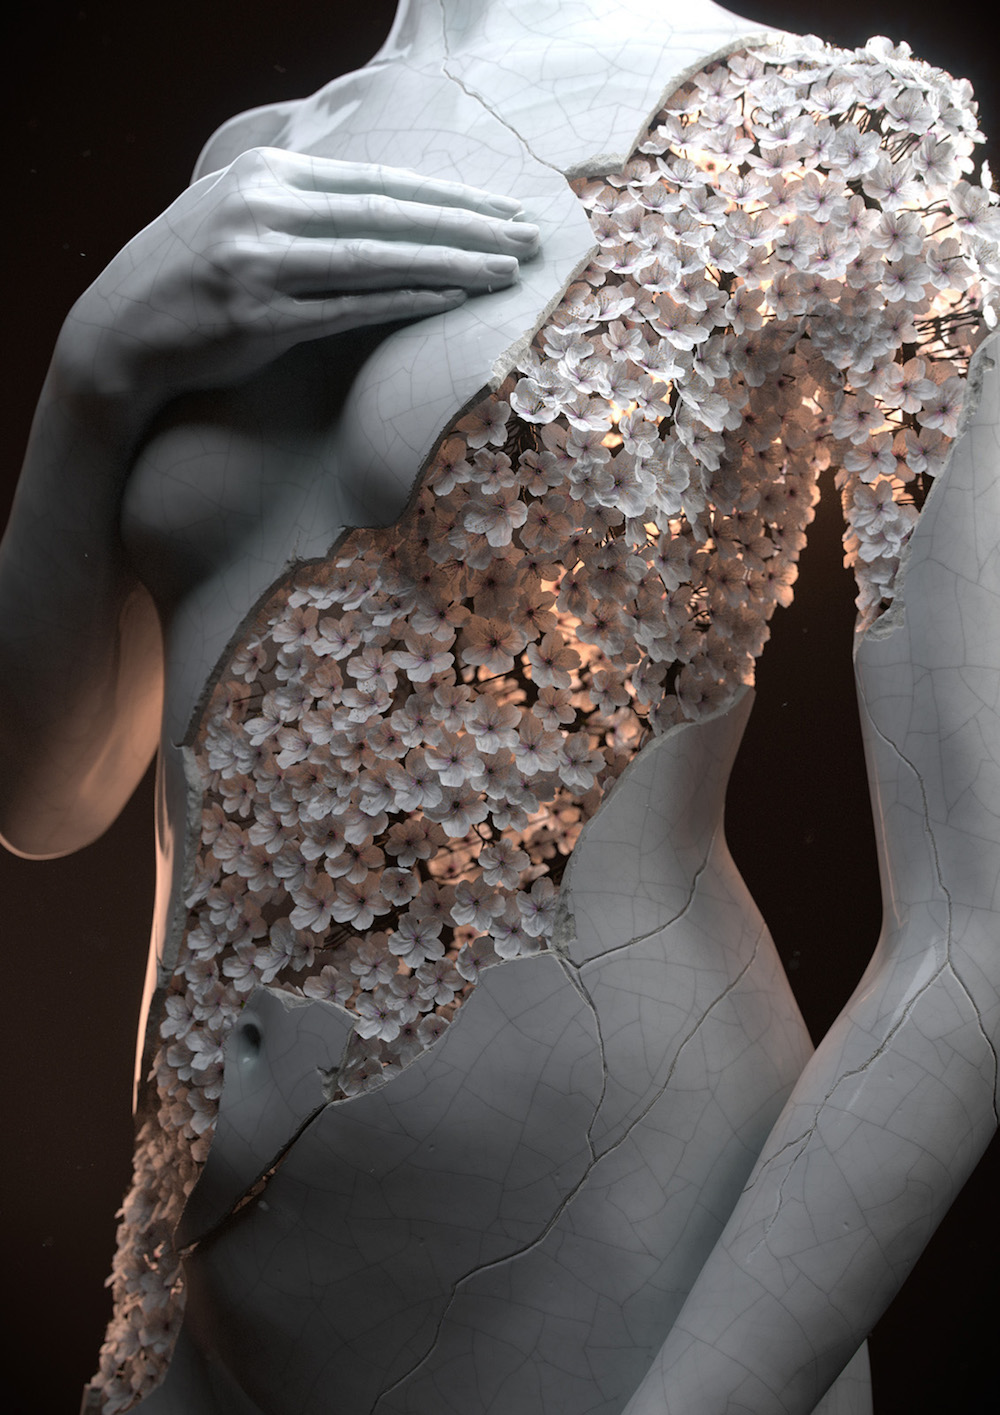 Digital Sculptures of Female Forms Rendered in Flowers by Jean-Michel Bihorel